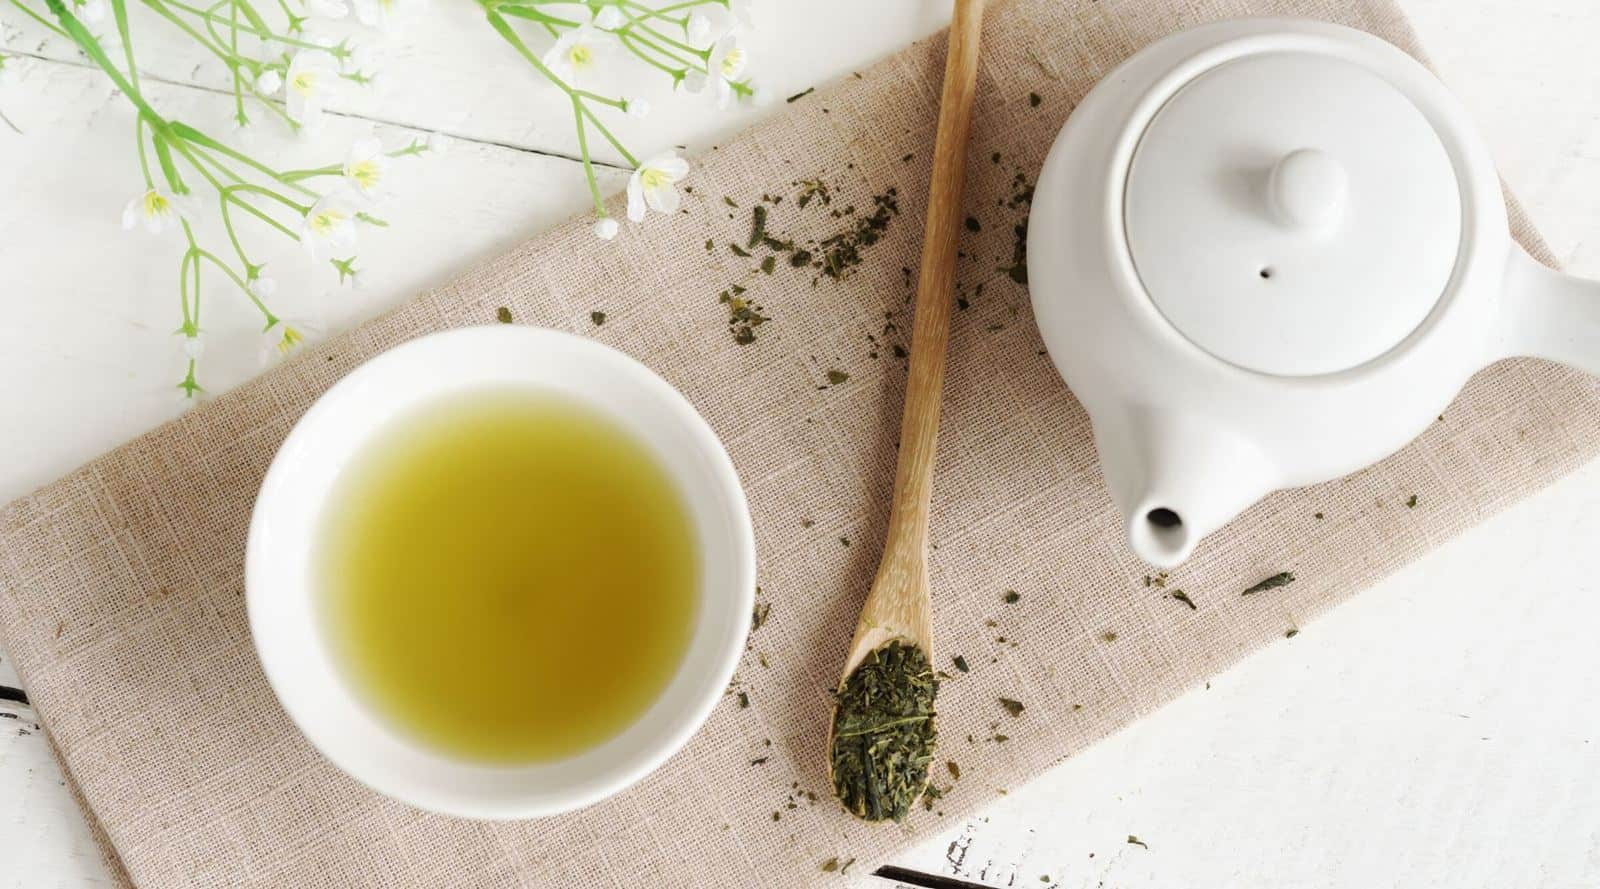 can you add milk to green tea? how does milk affect green tea?